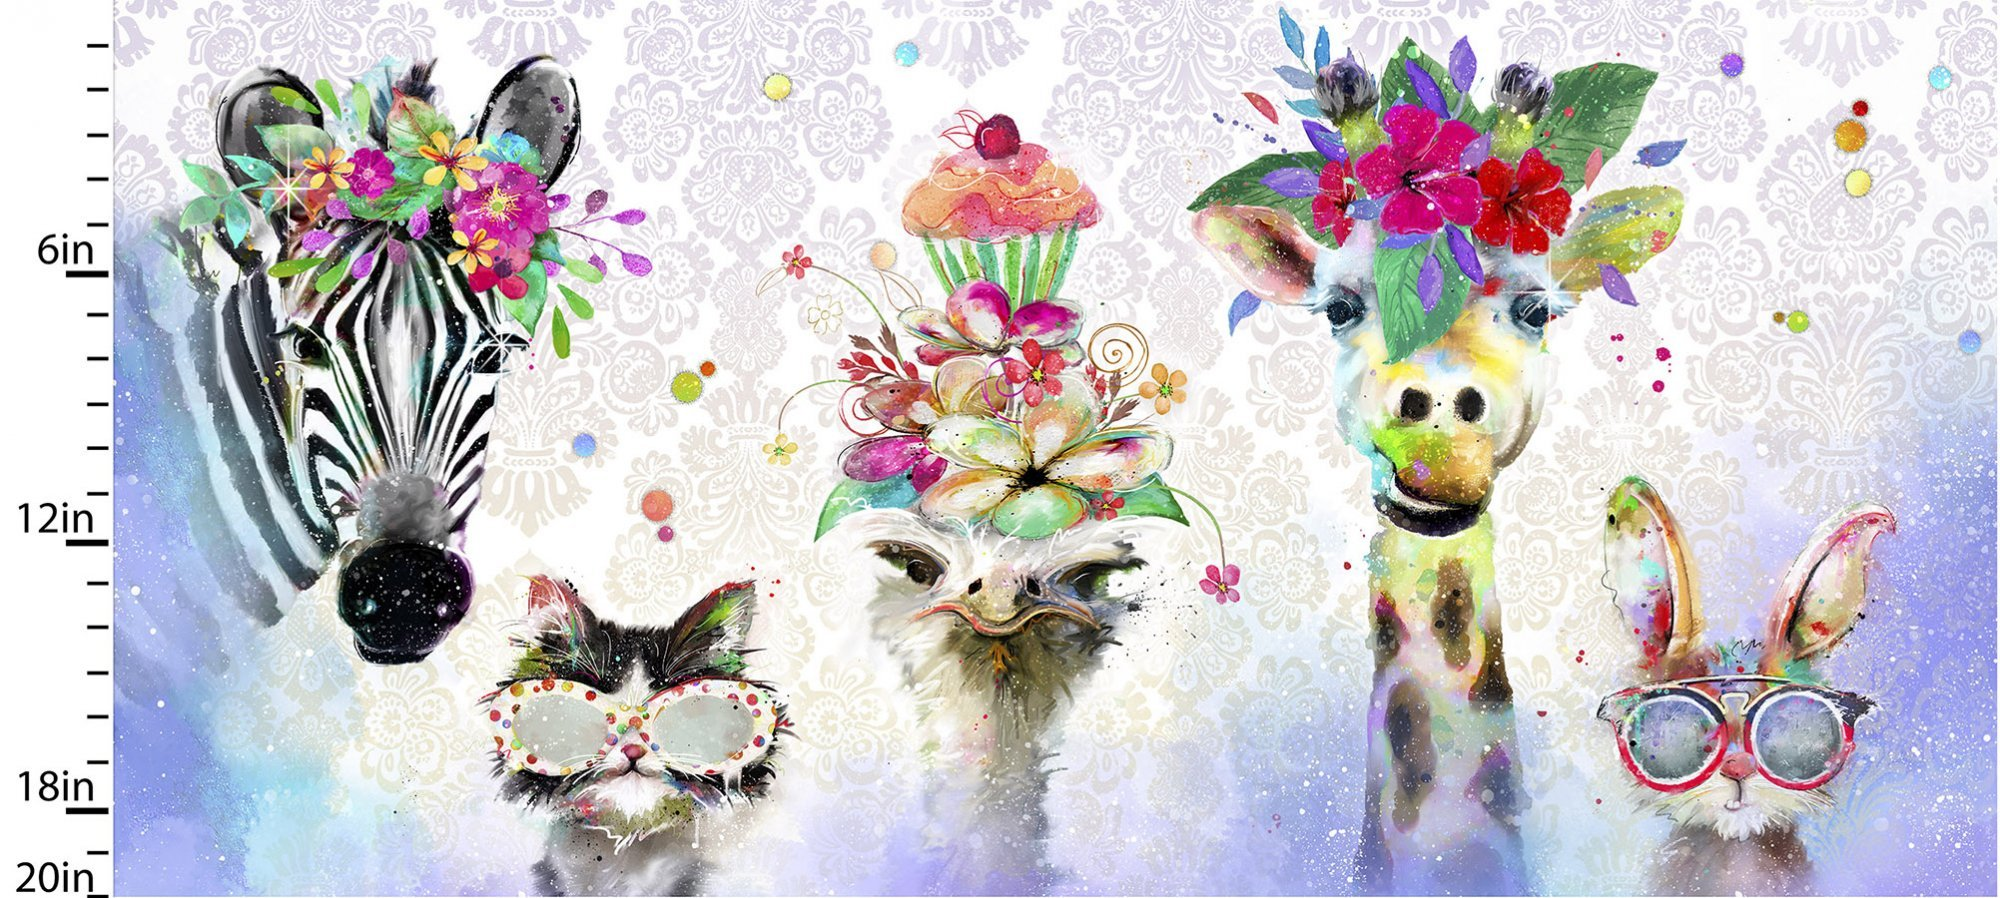 Party Animals by Connie Haley - Panel -  #17315-MLT-CTN-D